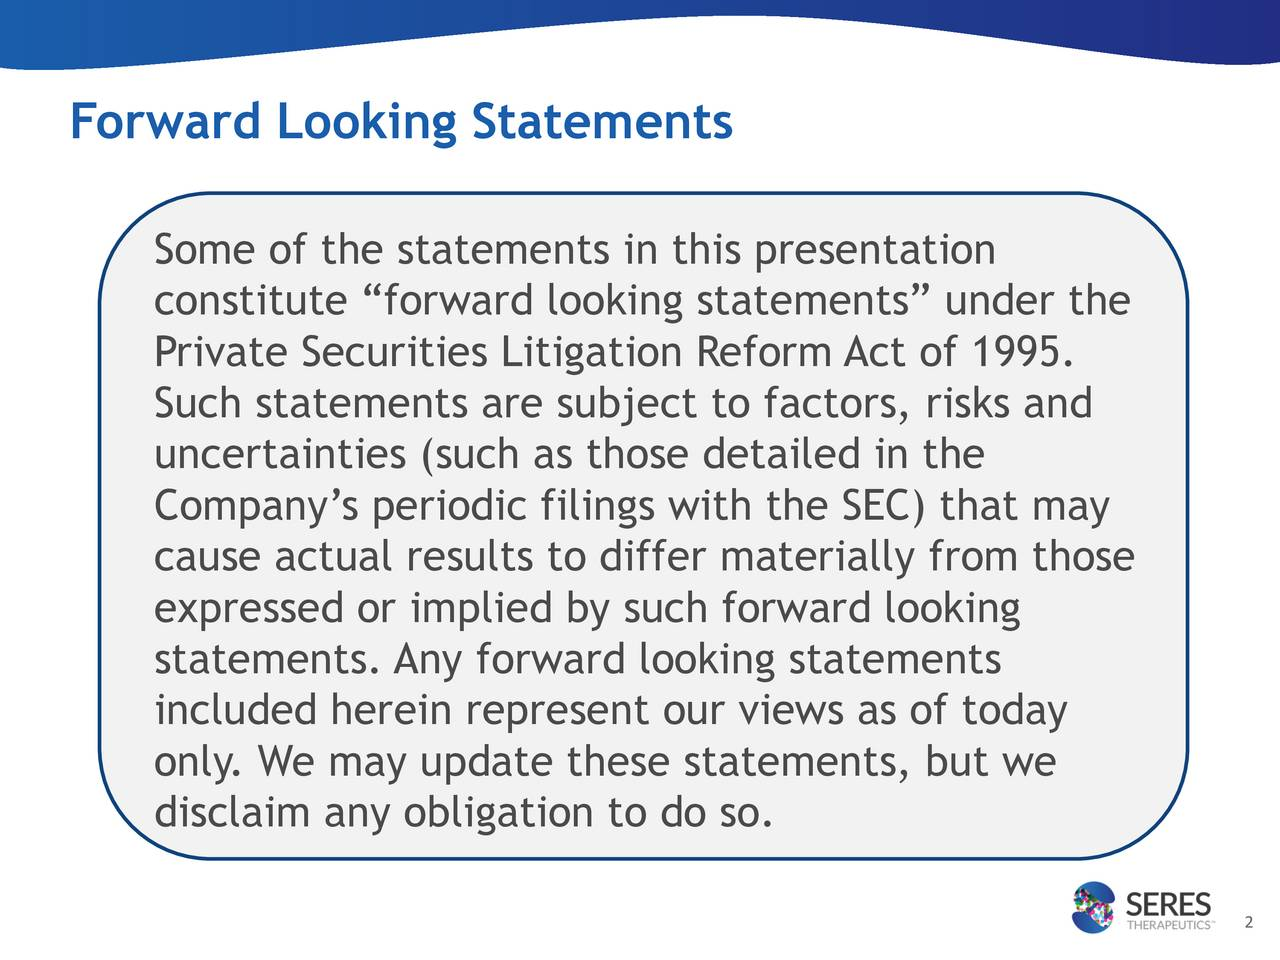 """Some of the statements in this presentation constitute """"forward looking statements"""" under the Private Securities Litigation Reform Act of 1995. Such statements are subject to factors, risks and uncertainties (such as those detailed in the Company's periodic filings with the SEC) that may cause actual results to differ materially from those expressed or implied by such forward looking statements. Any forward looking statements included herein represent our views as of today only. We may update these statements, but we disclaim any obligation to do so. 2"""